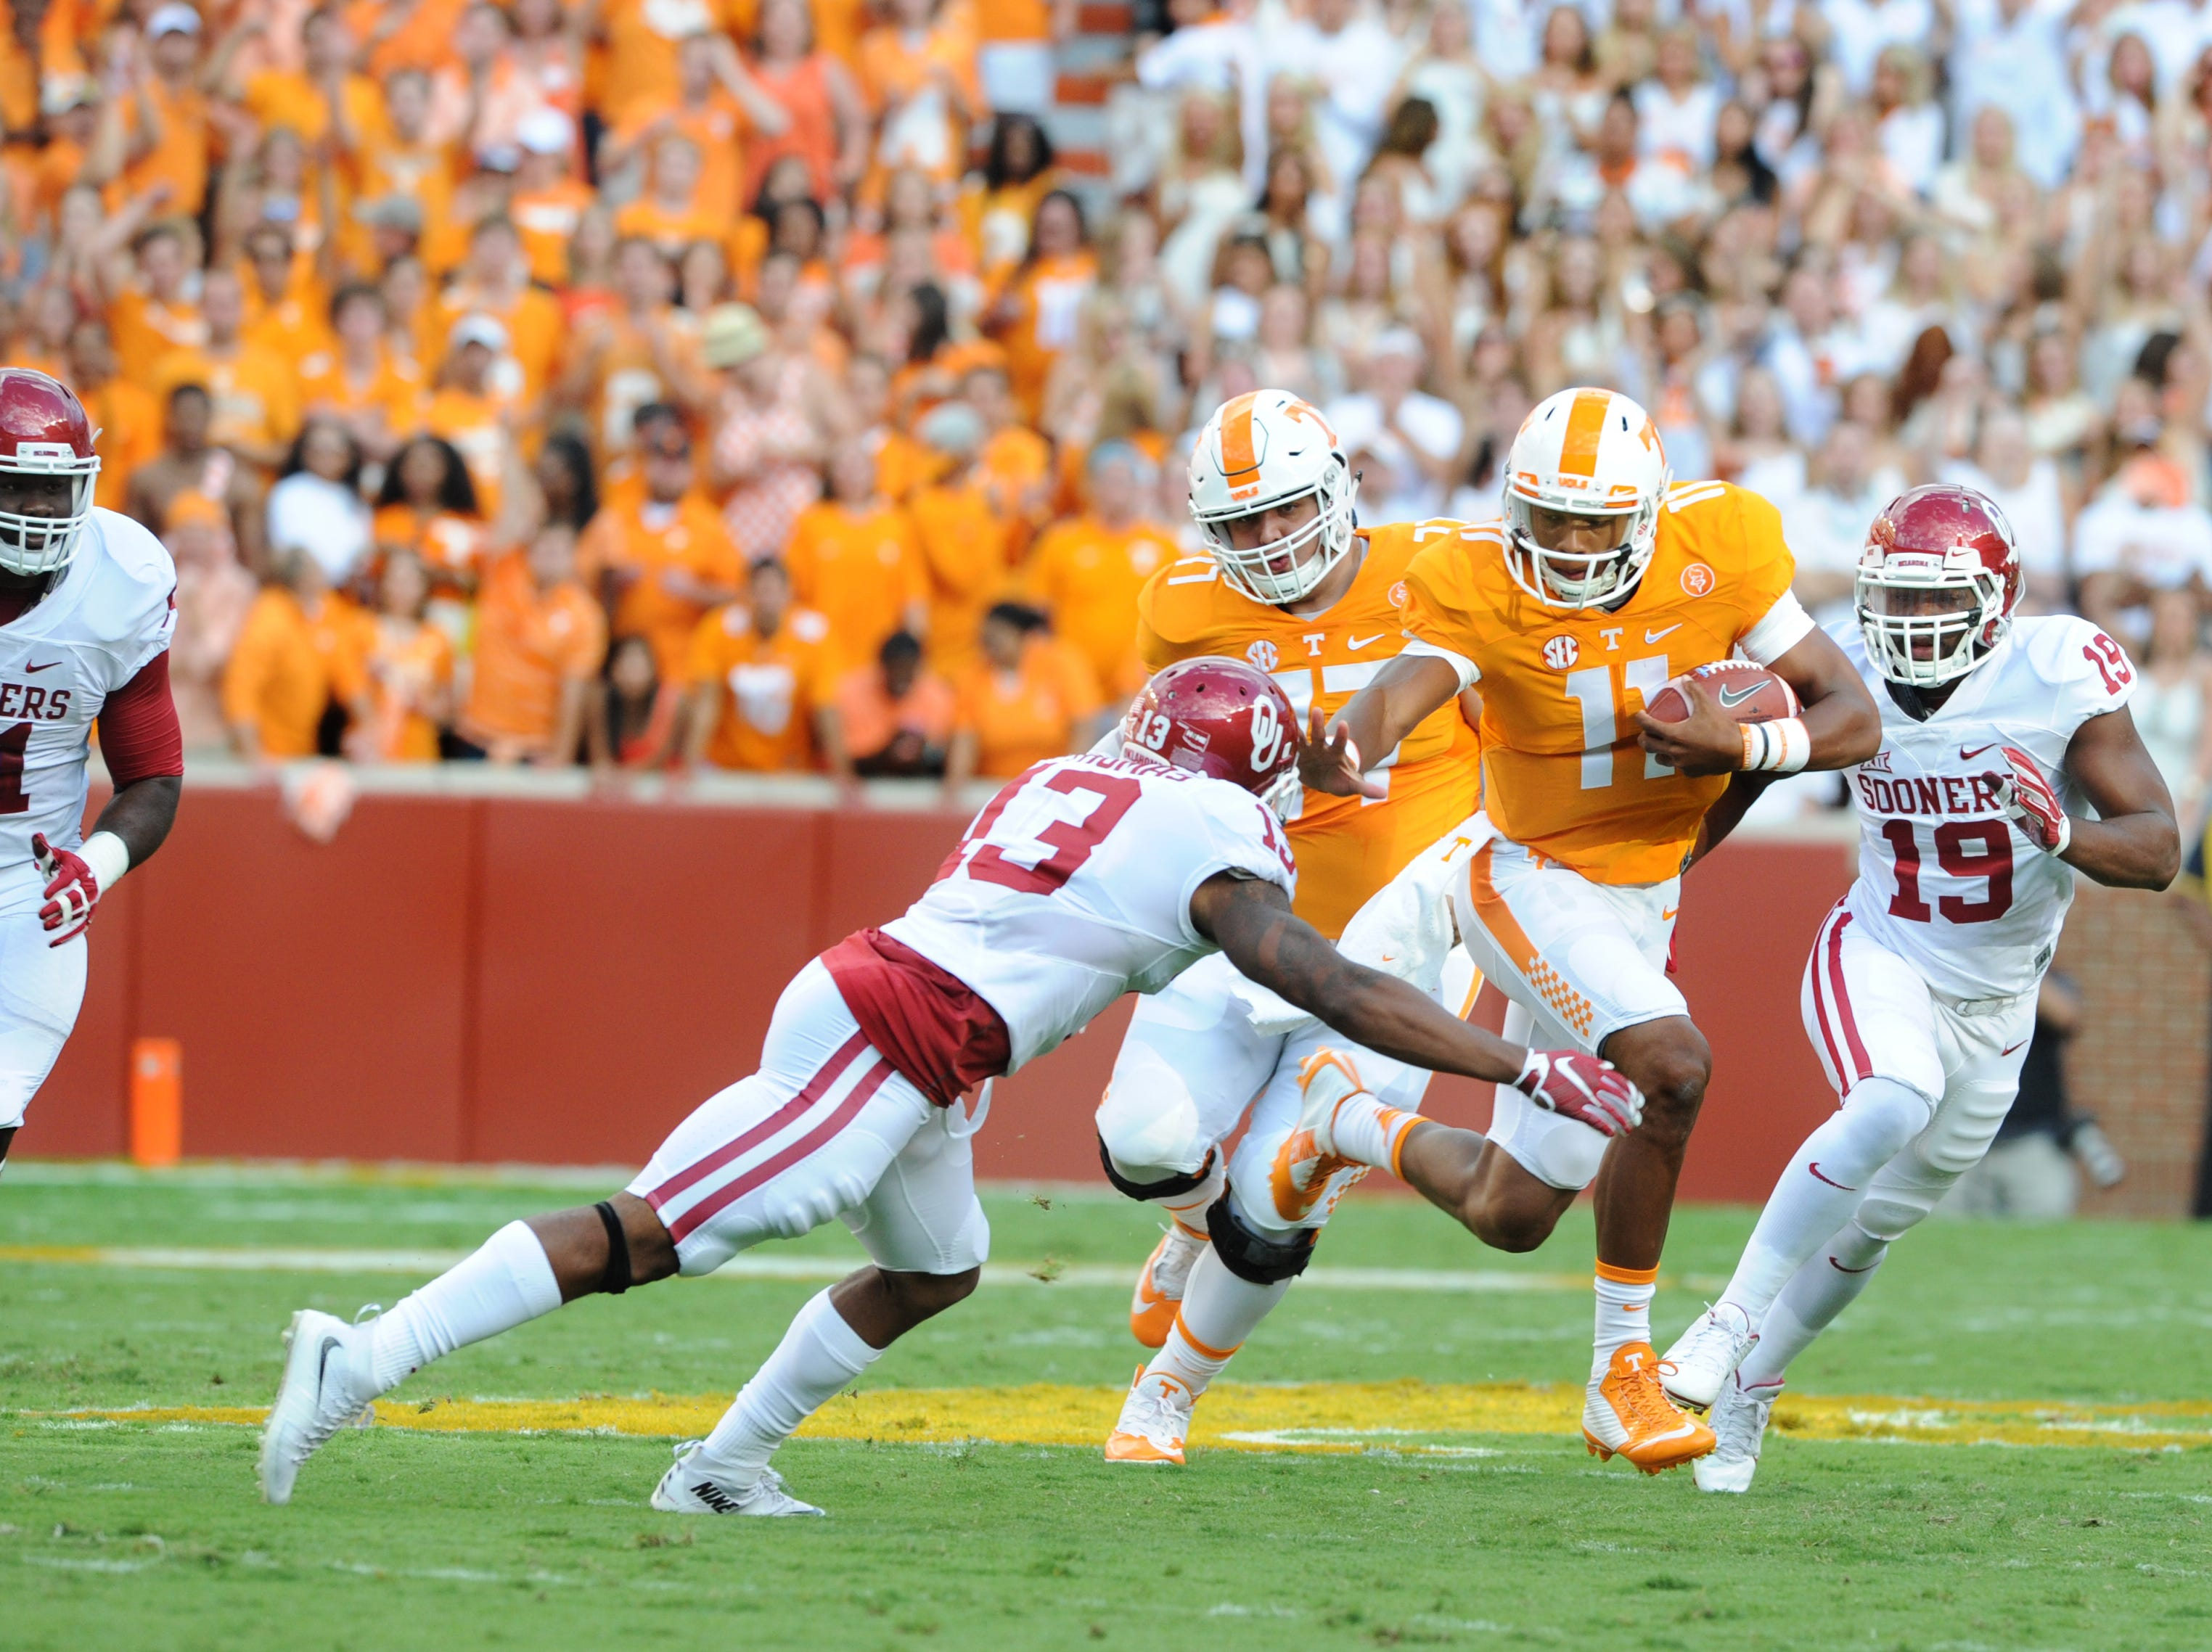 Tennessee quarterback Joshua Dobbs (11) pushes off an advance by Oklahoma safety Ahmad Thomas (13) during the first half at Neyland Stadium on Saturday, Sept. 12, 2015 in Knoxville, Tenn.